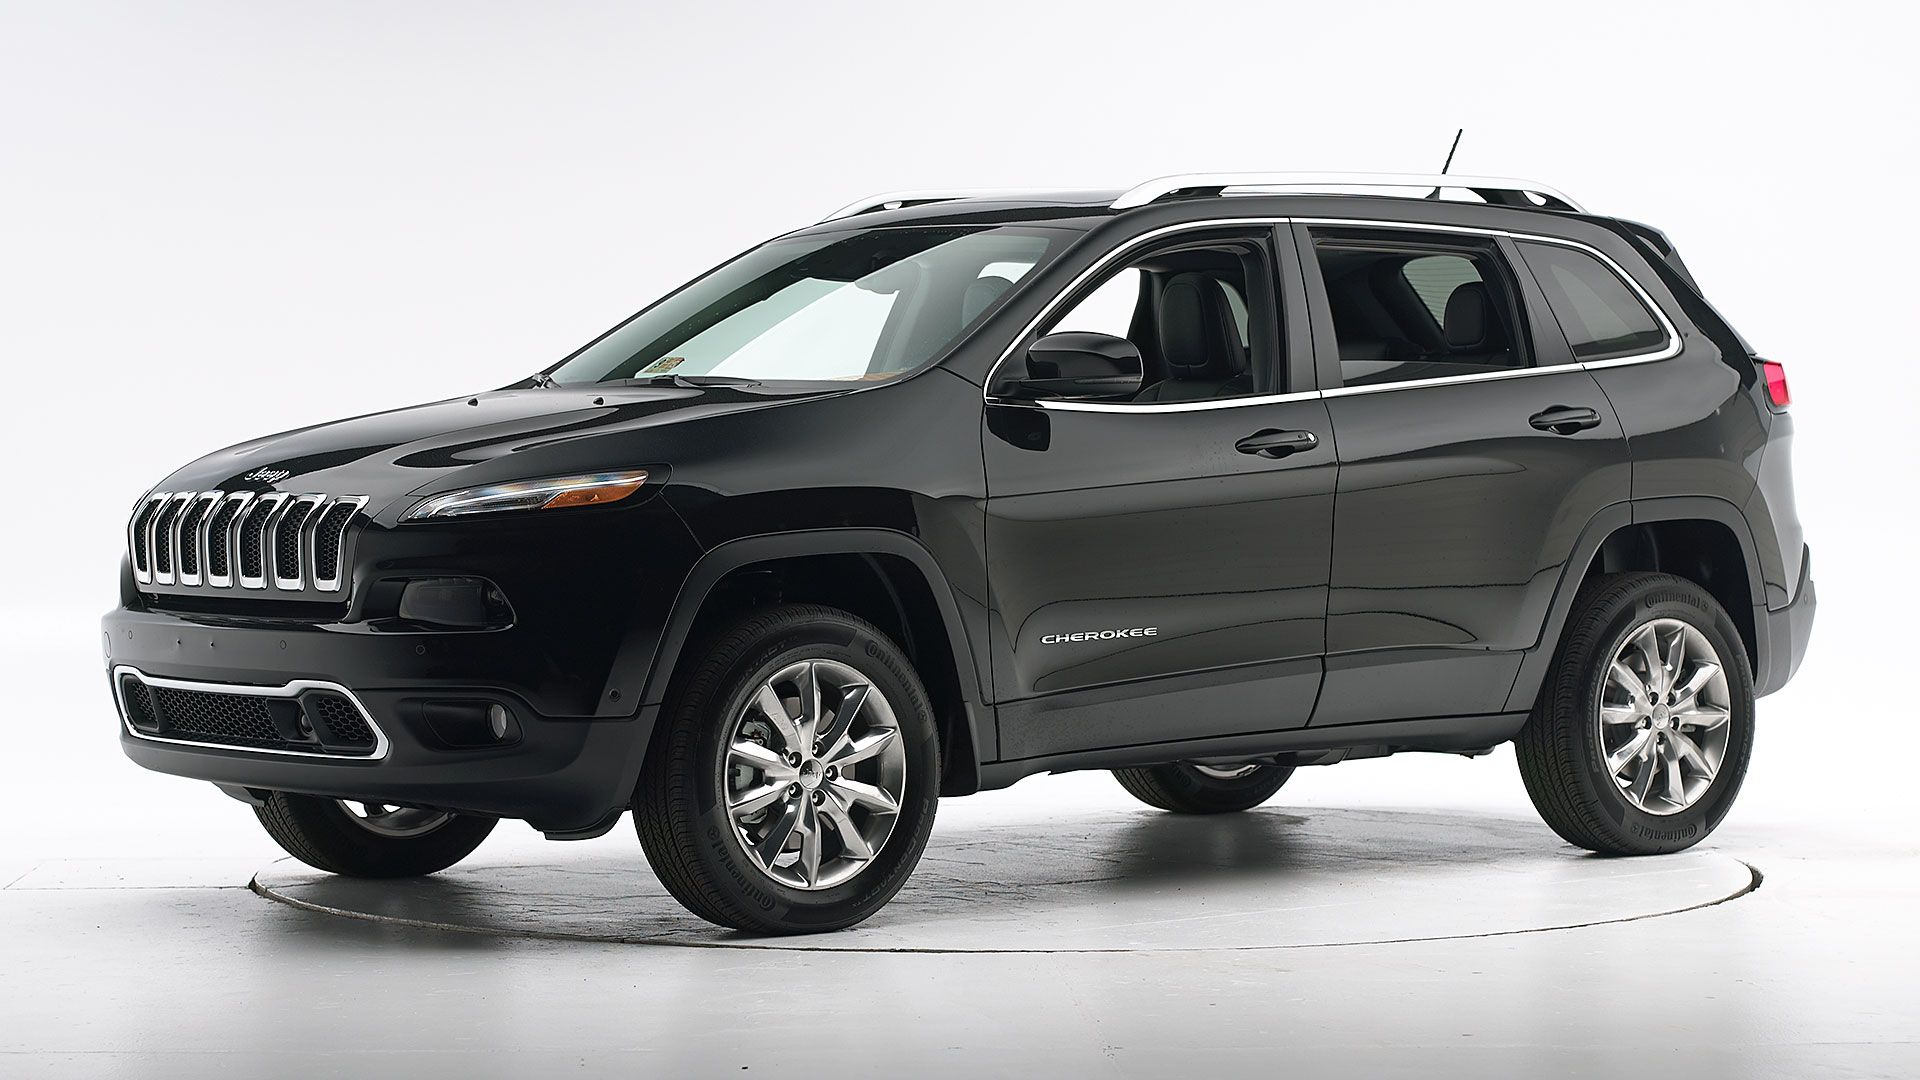 Awesome 2015 jeep cherokee safety rating